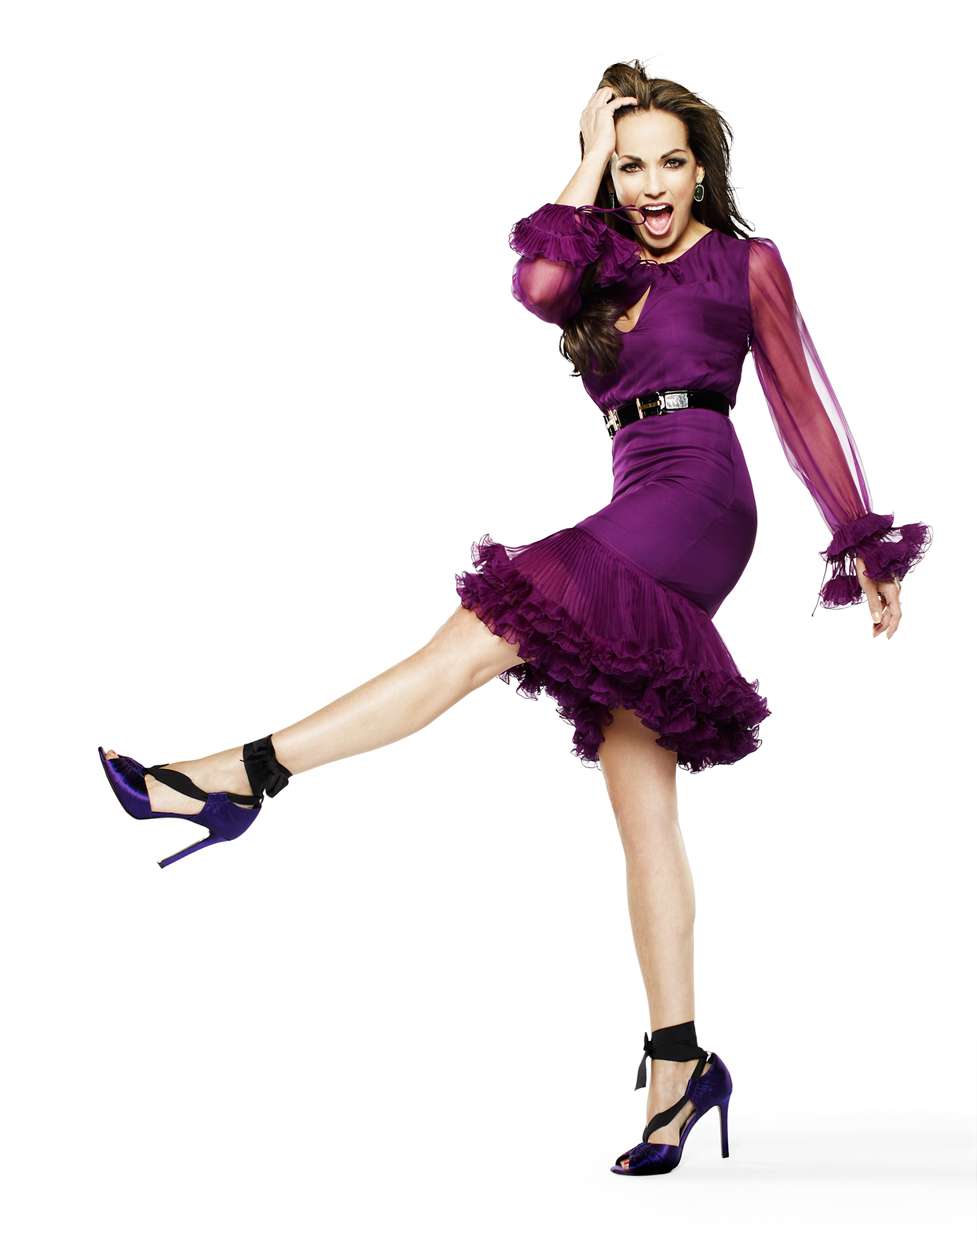 Mark DeLong - Celebrity Photographer - Celebrity in a purple dress and high heels.